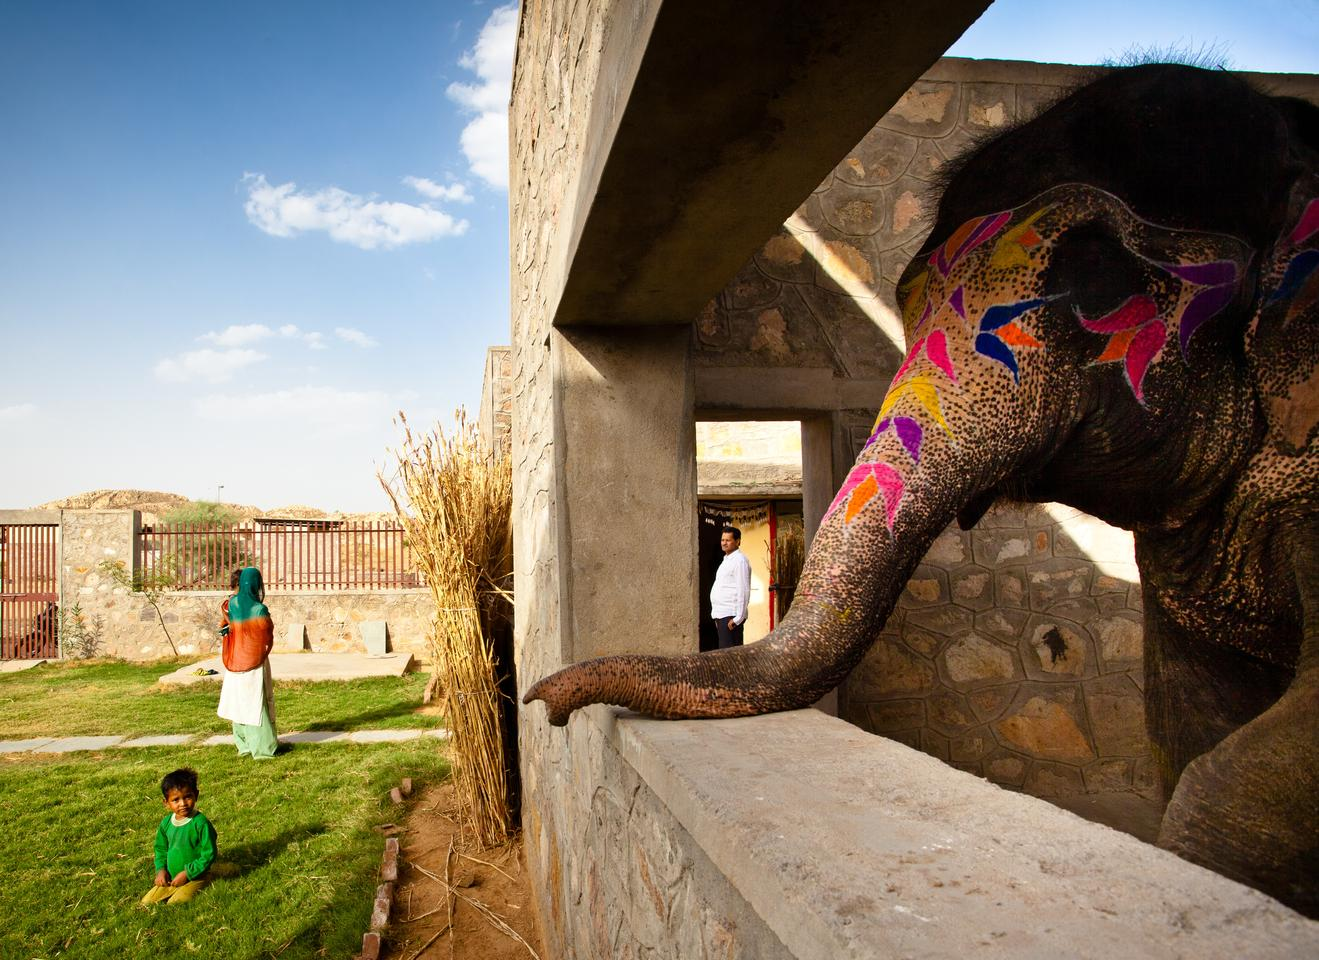 The Hathigaon elephants can visually connect with their caretakers (Photo: Carlos Chen)